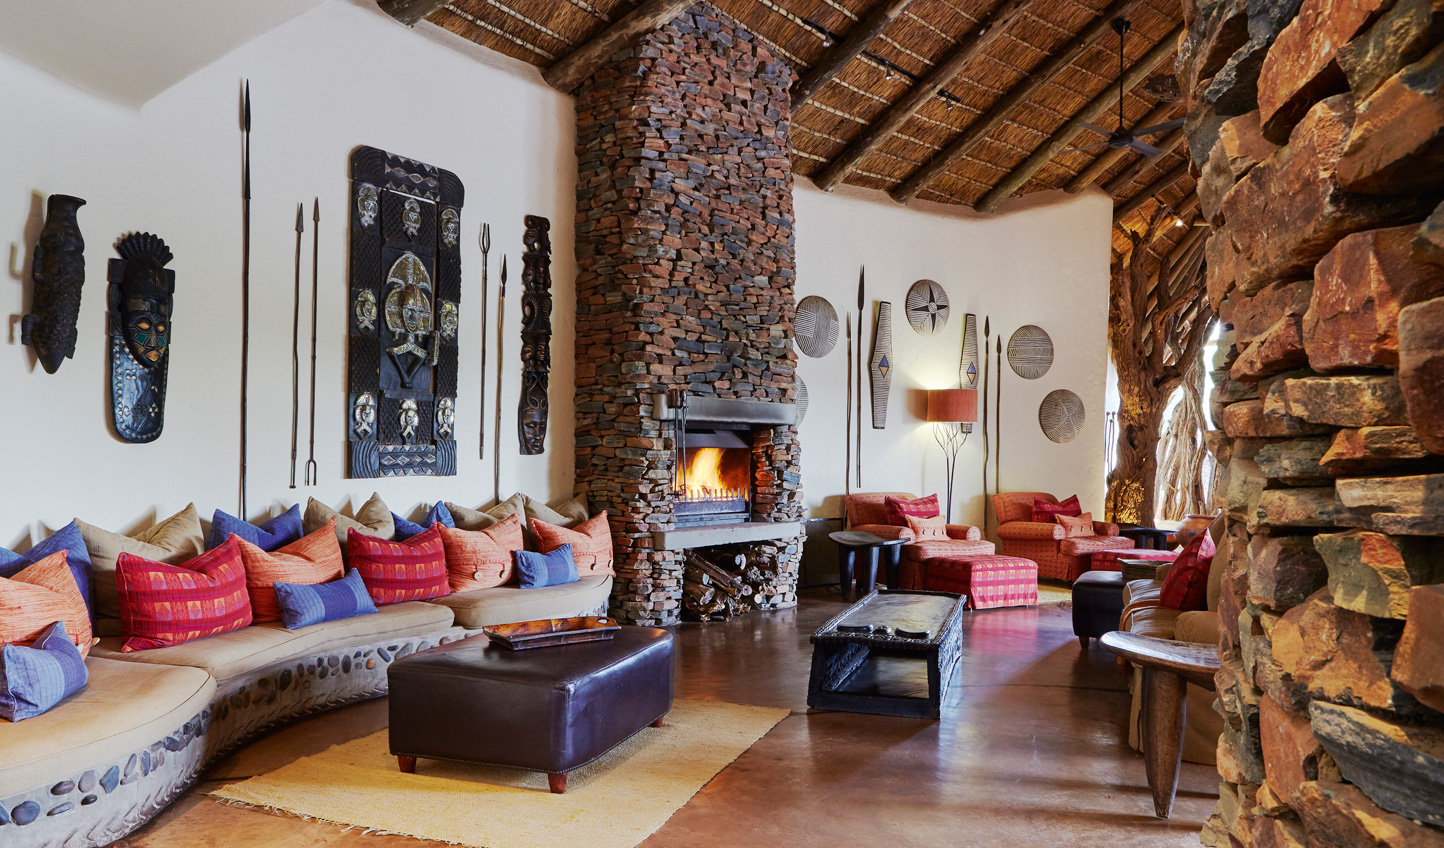 Relax in the main lodge before heading out on an evening game drive